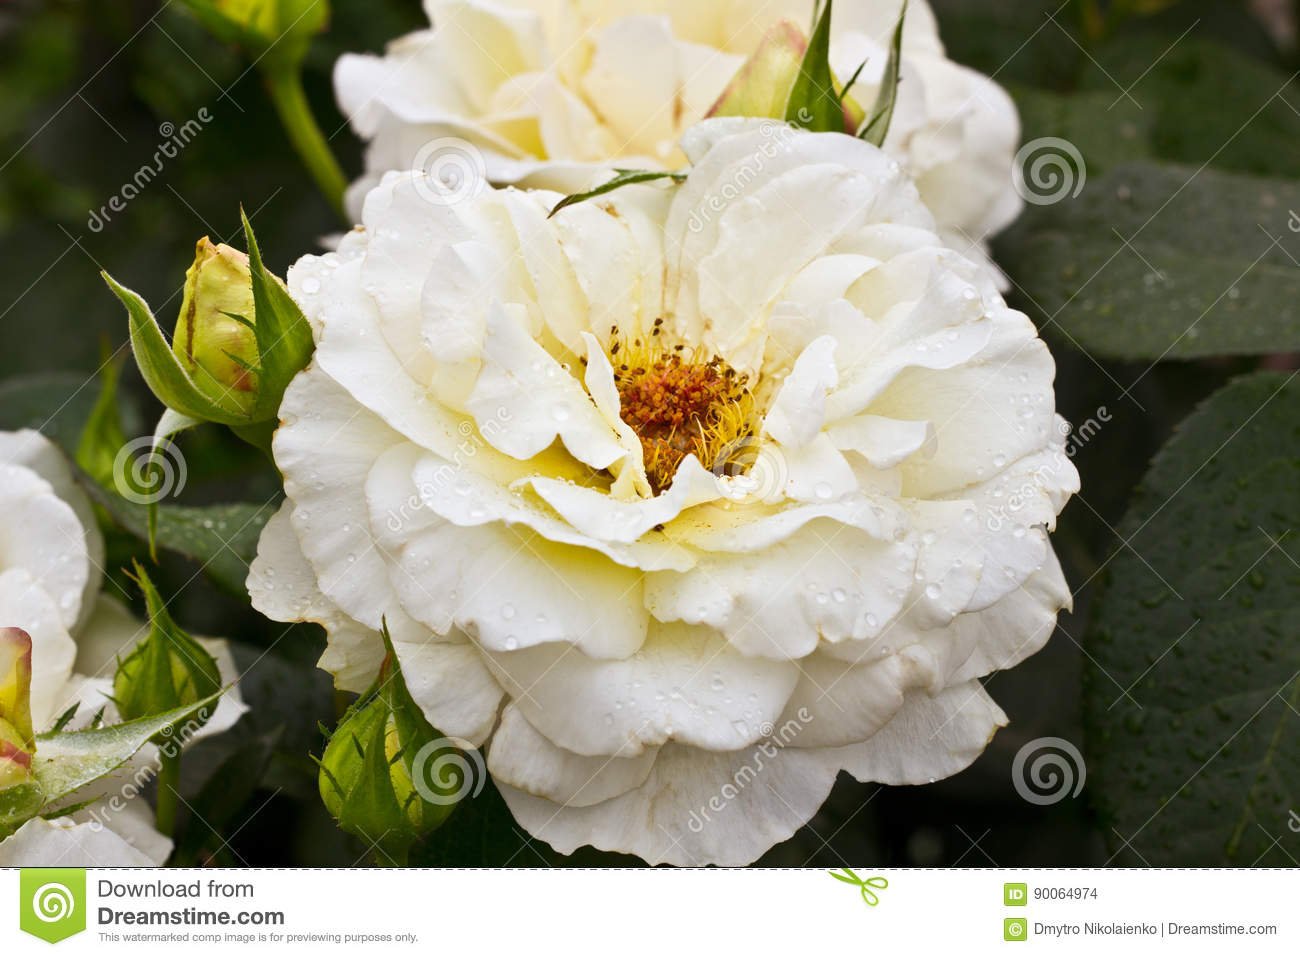 Beautiful white flower. White rose bush. Horizontal summer flowers art background. Space in background for copy, text, your words